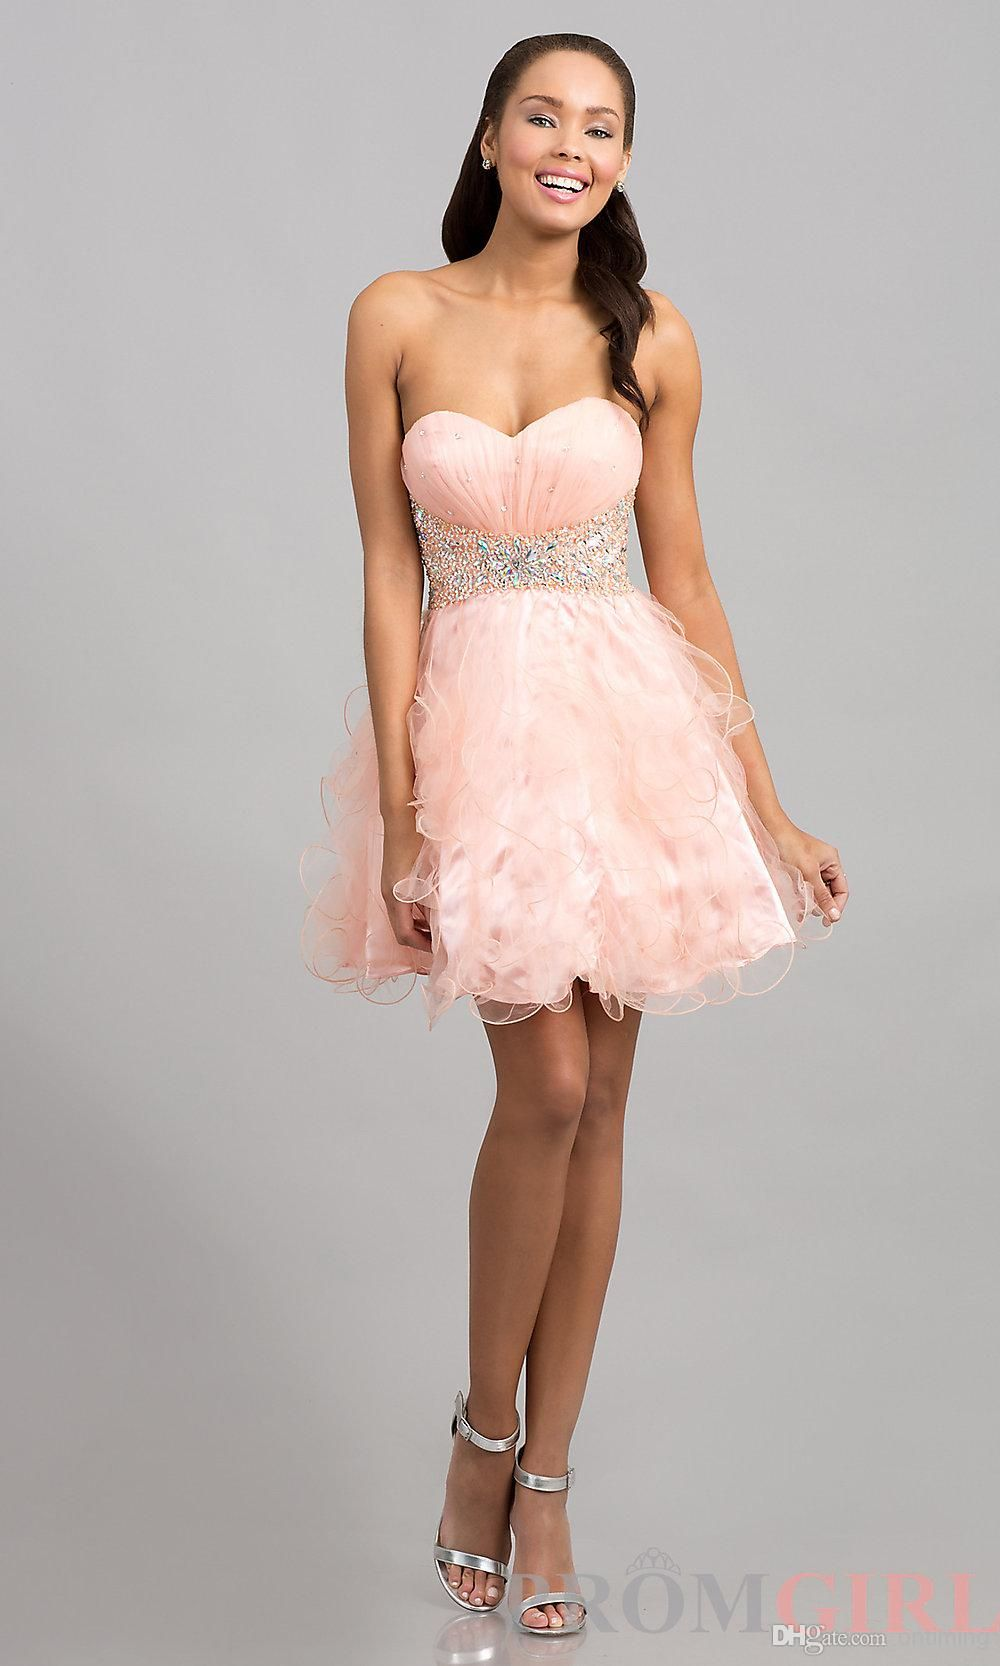 Awesome short peach prom dresses 2014 | find your fashion ...